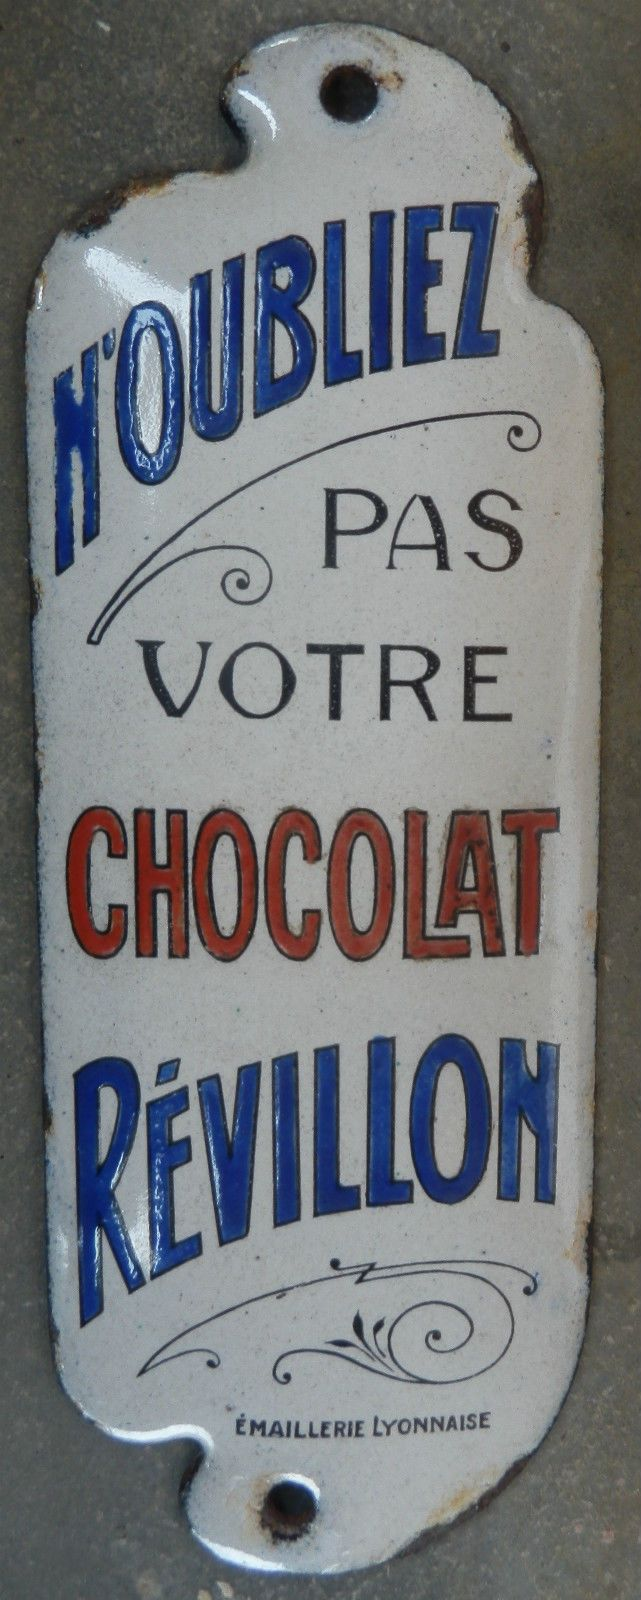 plaque maill e ancienne de propret chocolat r villon publicitaire bistrot ebay mail. Black Bedroom Furniture Sets. Home Design Ideas